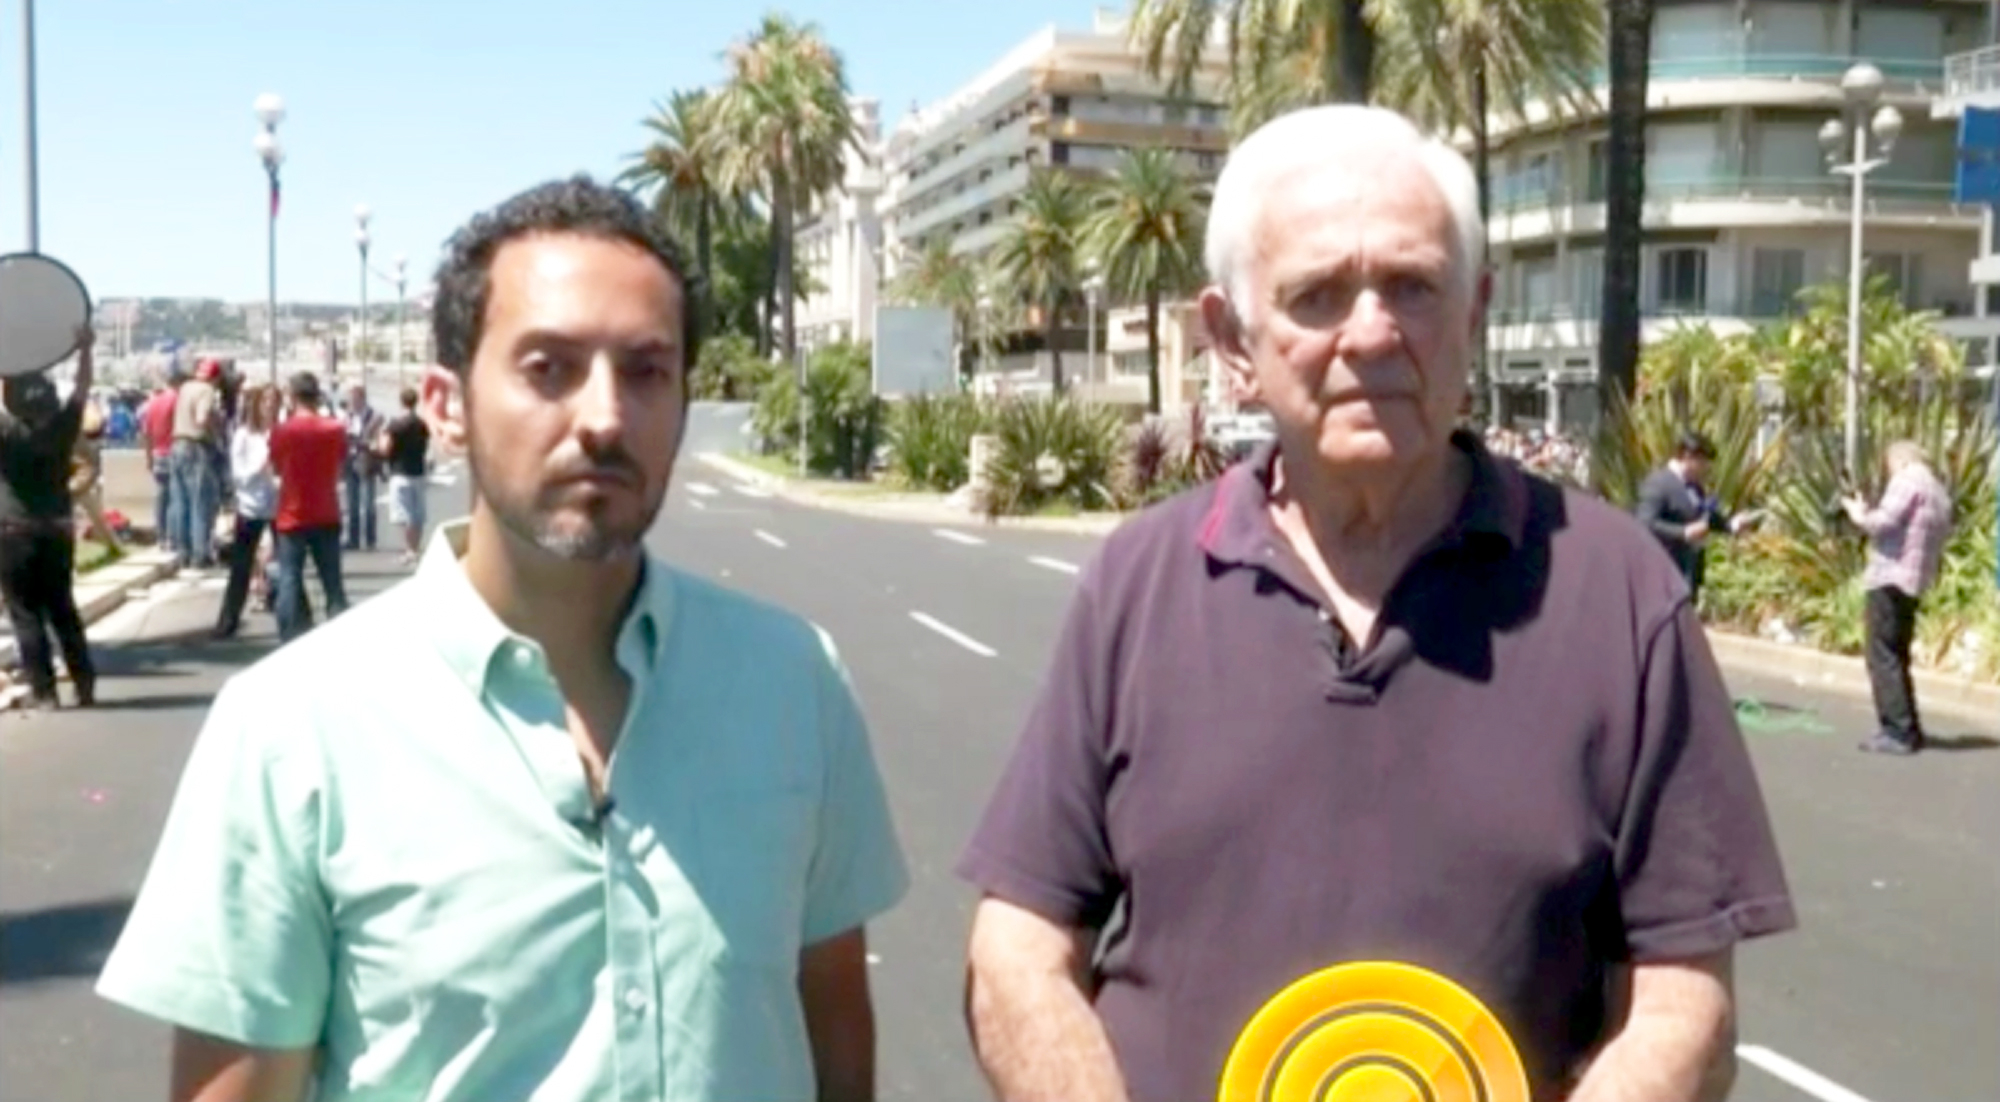 Two Americans who witnessed the Thursday, July 14, terror attack in Nice